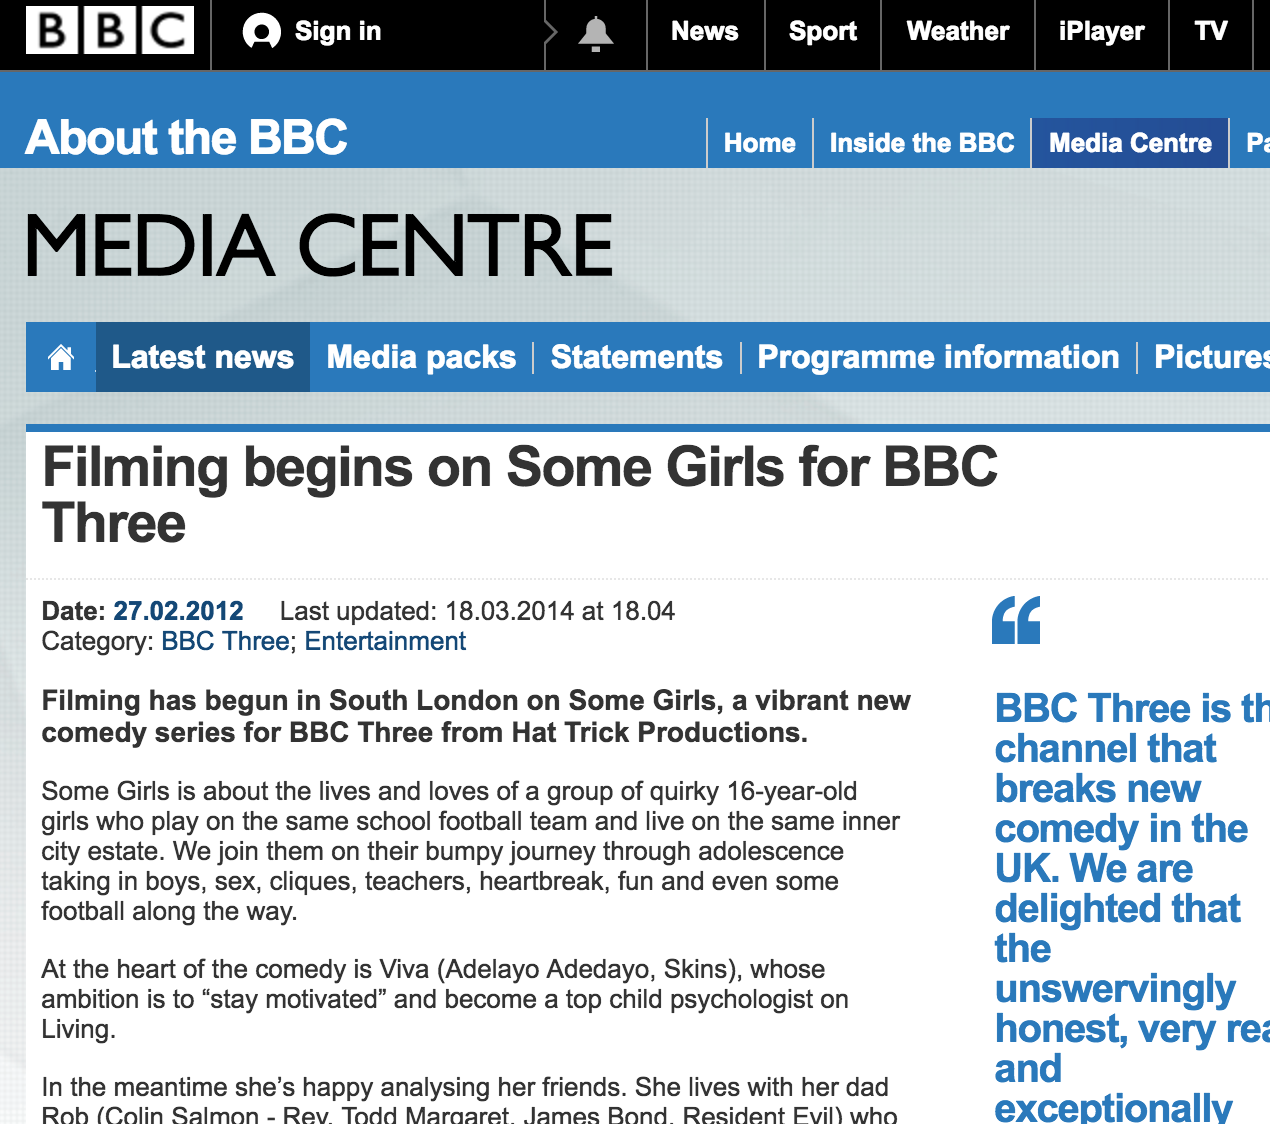 BBC3: Some Girls